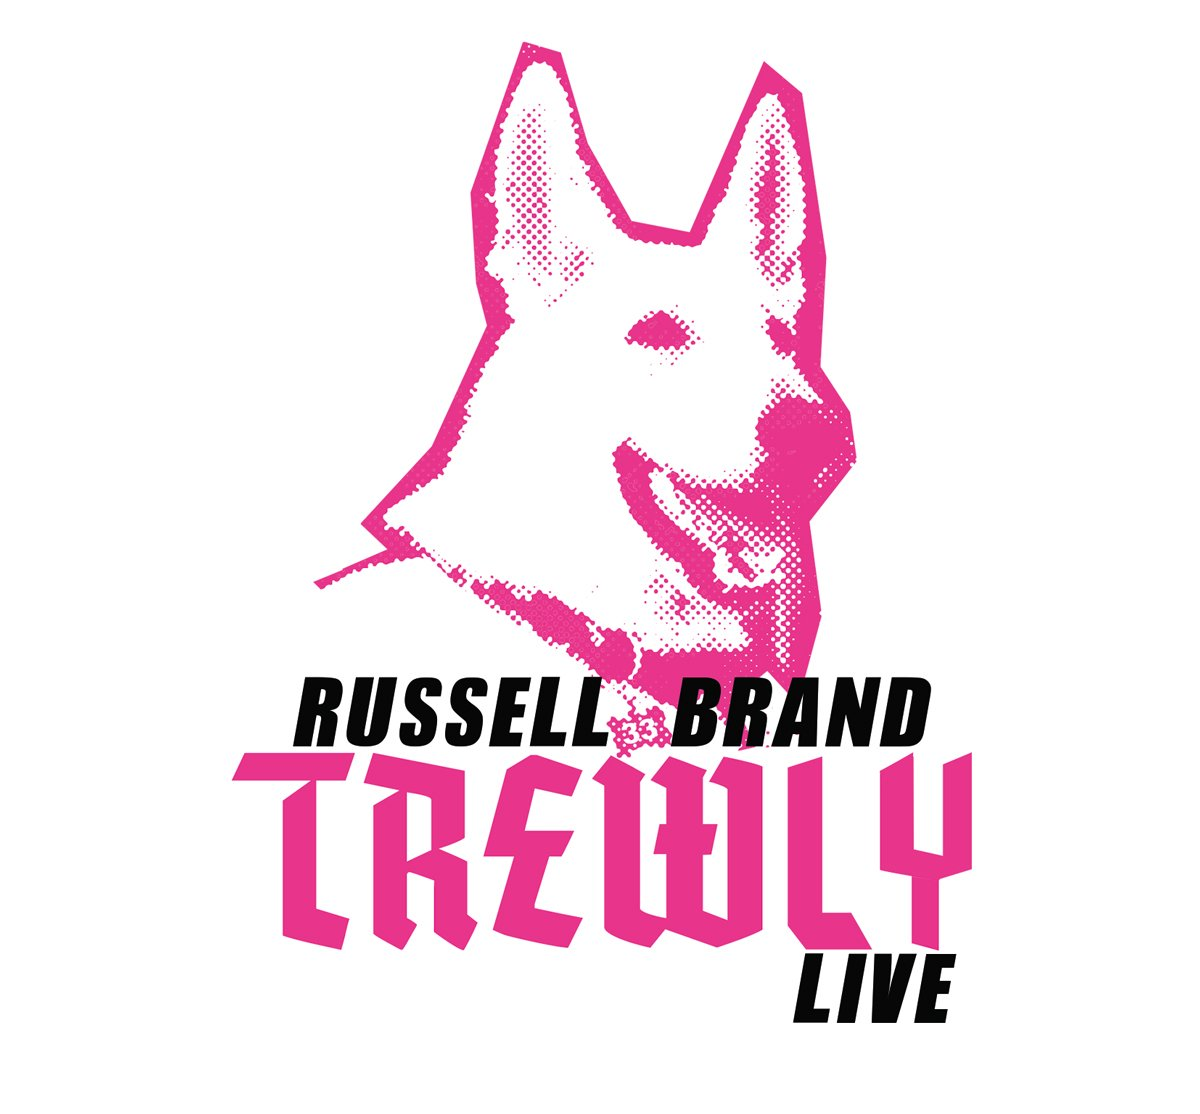 RBNews:   Tuesday 4th Oct: Russell Brand Trewly Live - Come!  Tickets are here: https://t.co/mHB08Dbws9 https://t.co/xEQNy2MZwX